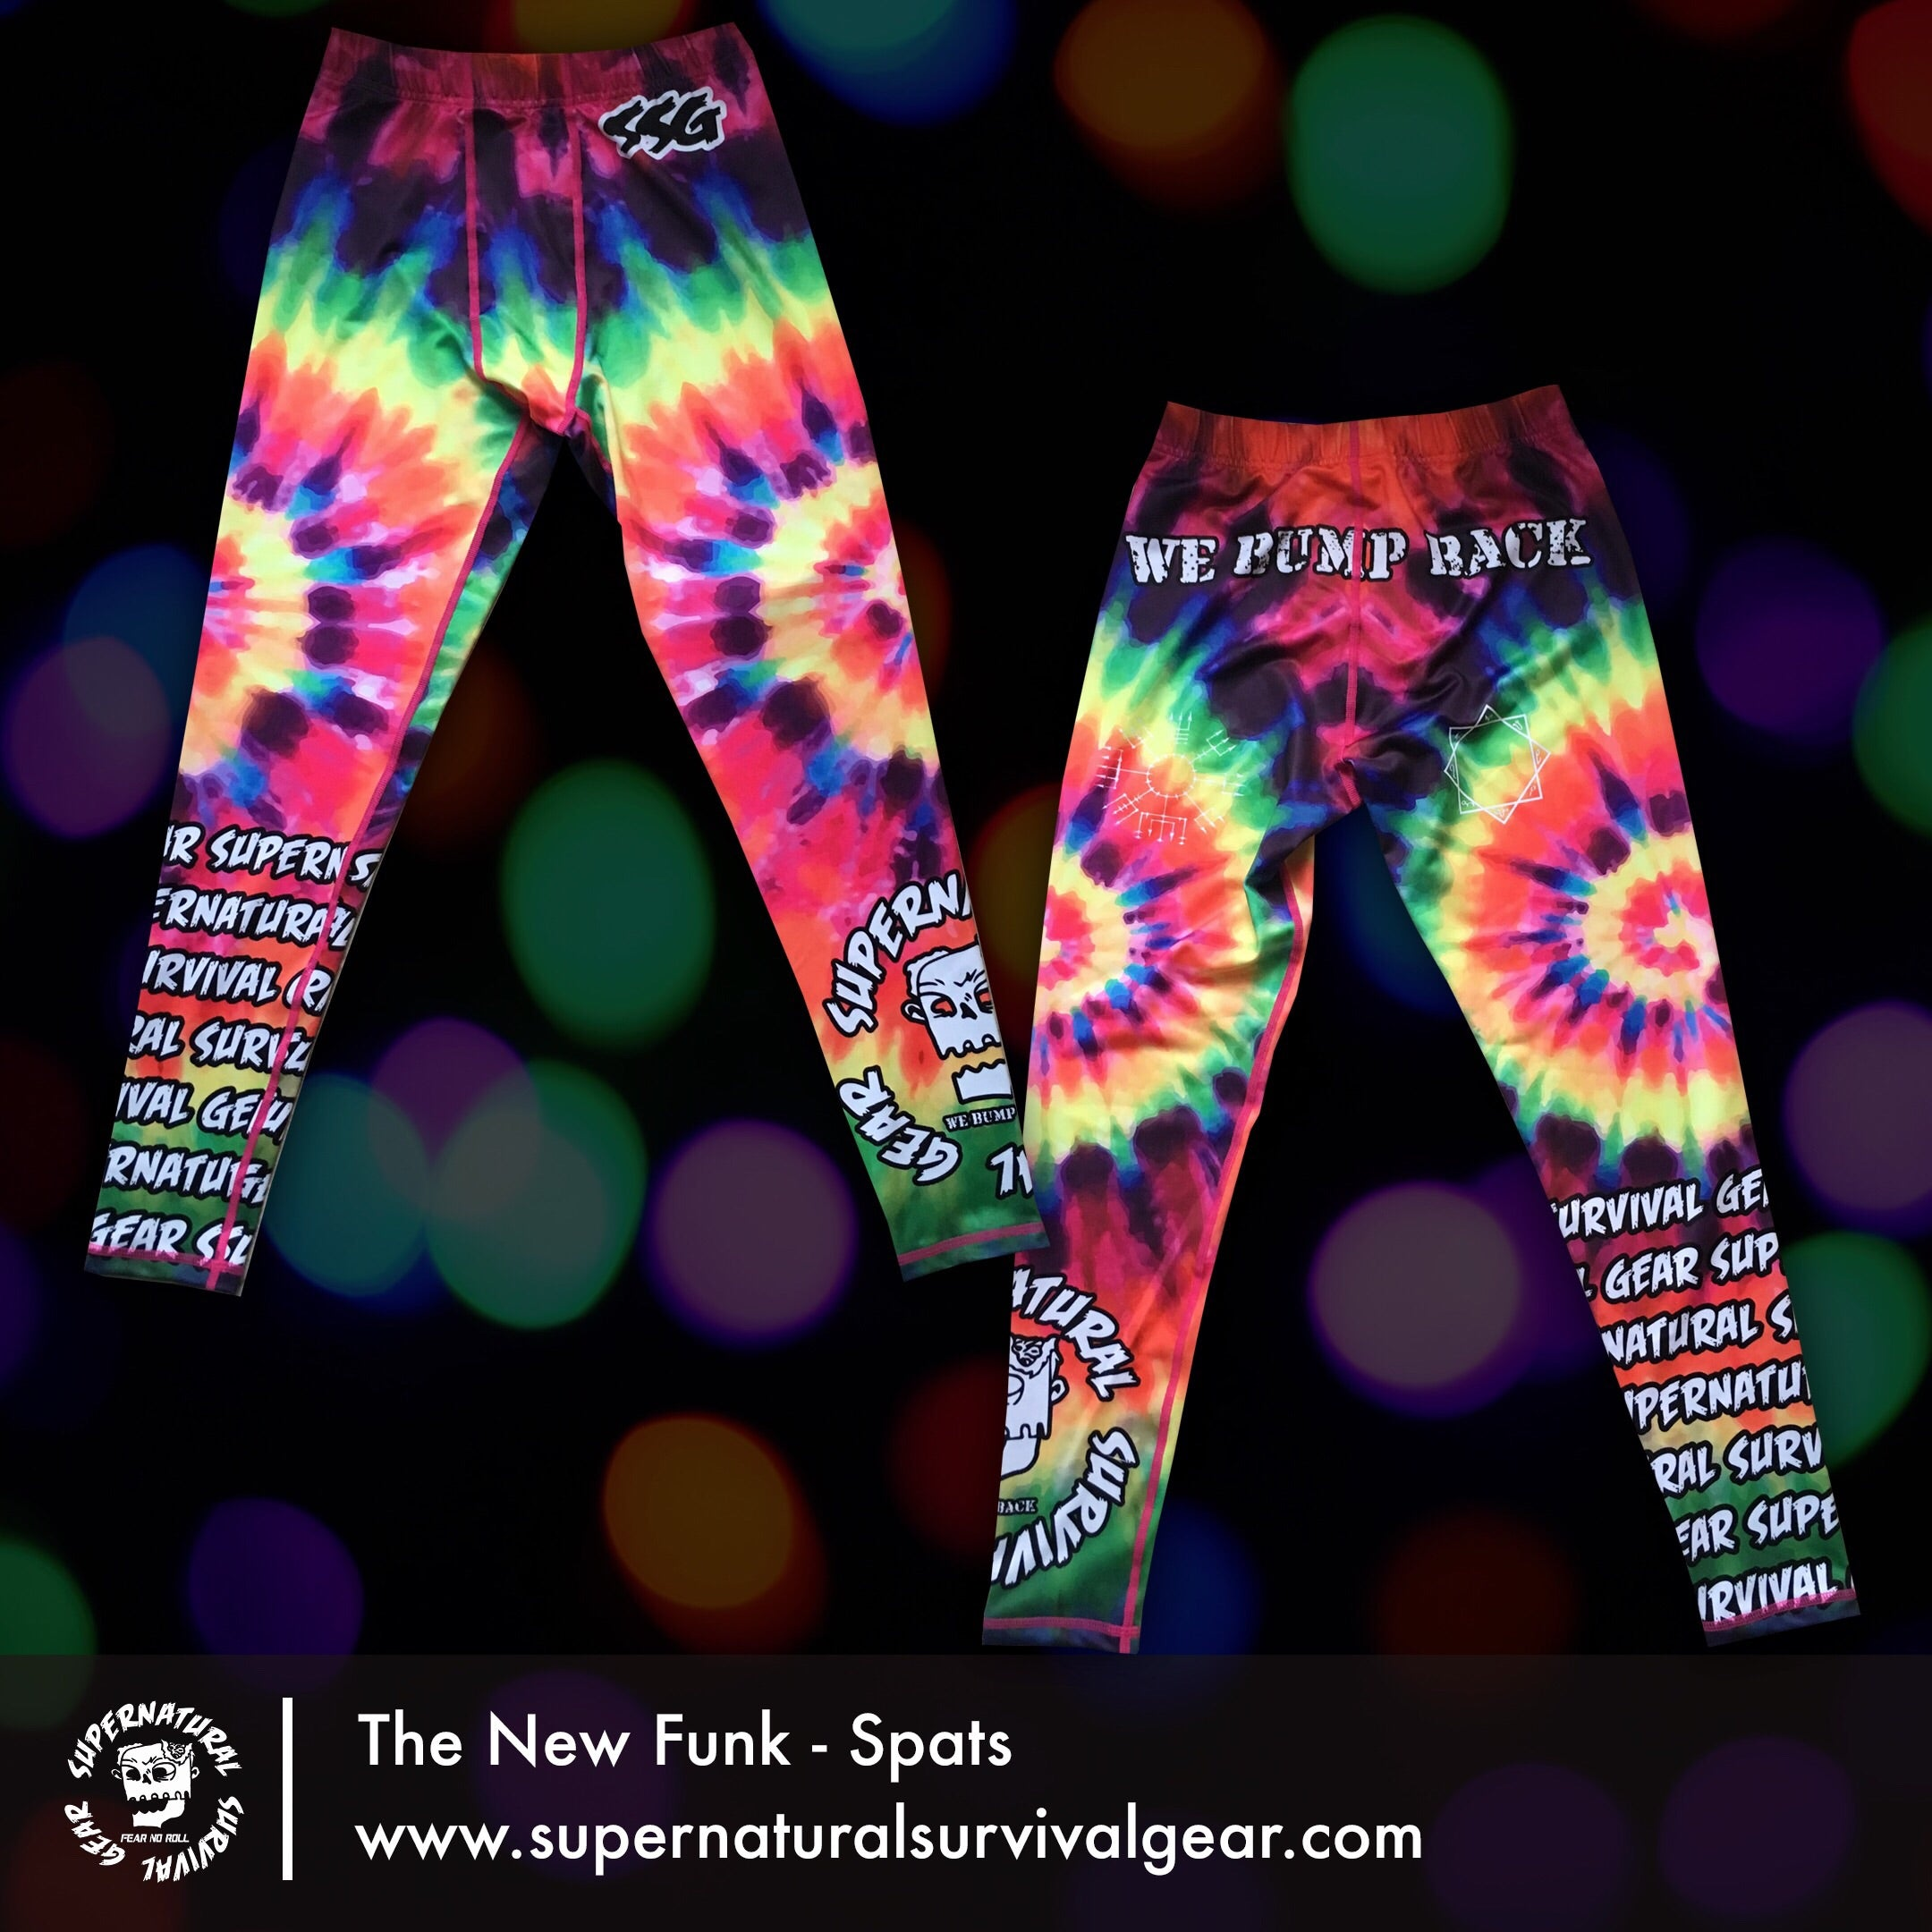 The New Funk Spats